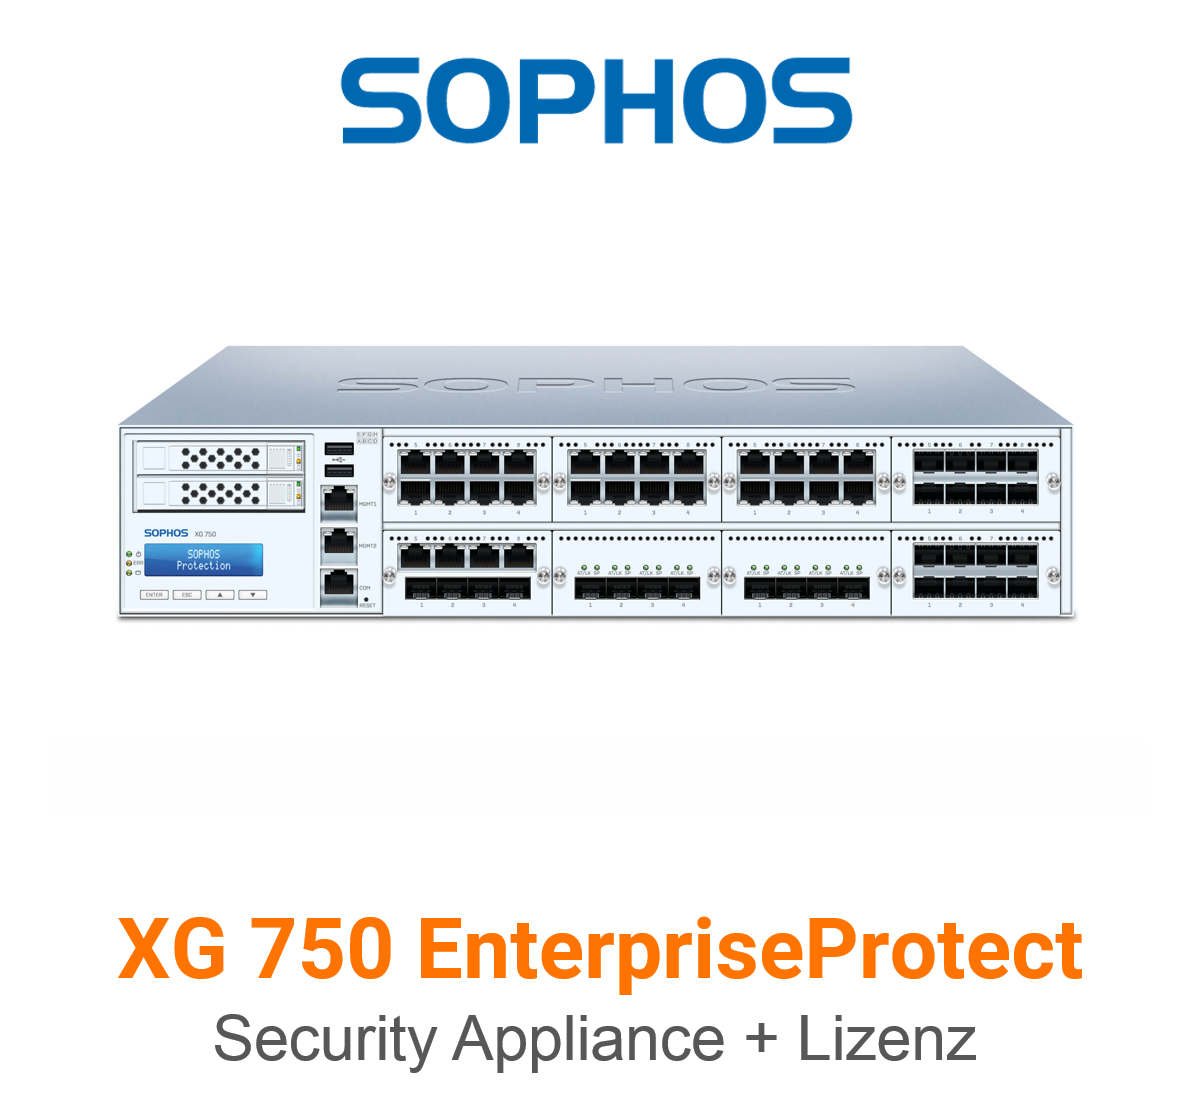 Sophos XG 750 EnterpriseProtect Bundle (Hardware + Lizenz)